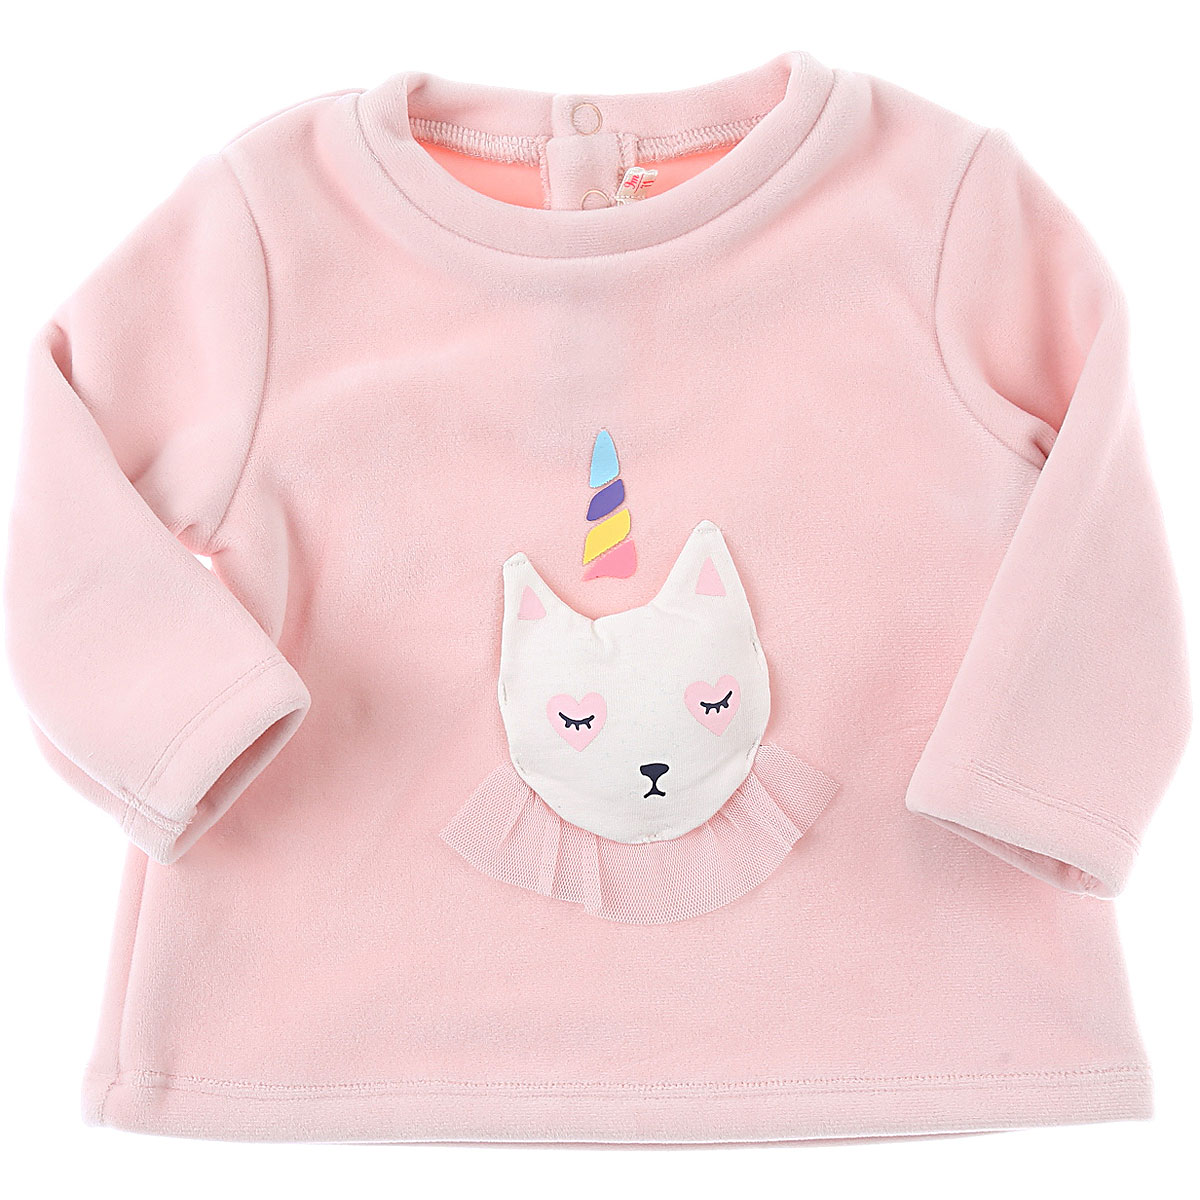 Billieblush Baby Sweatshirts & Hoodies for Girls On Sale, Baby Rose, polyester, 2019, 12M 18M 2Y 6M 9M